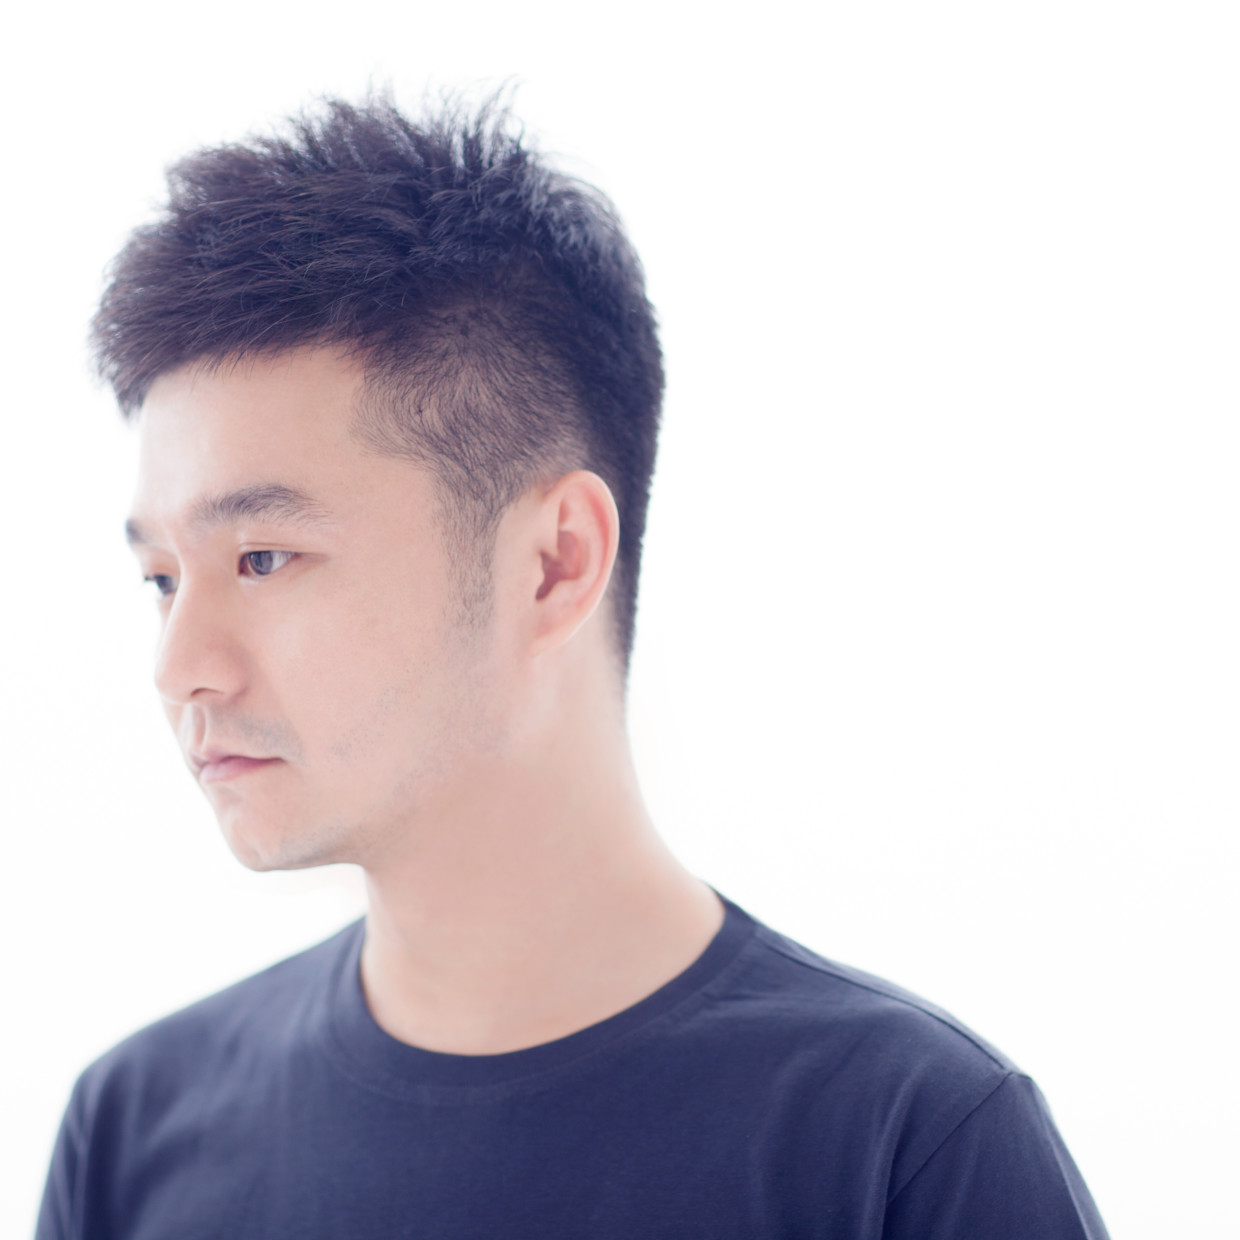 CURATOR Xi Tao Xi Tao, born in 1978 in Henan Province, lives and works in Beijing. He works as the...